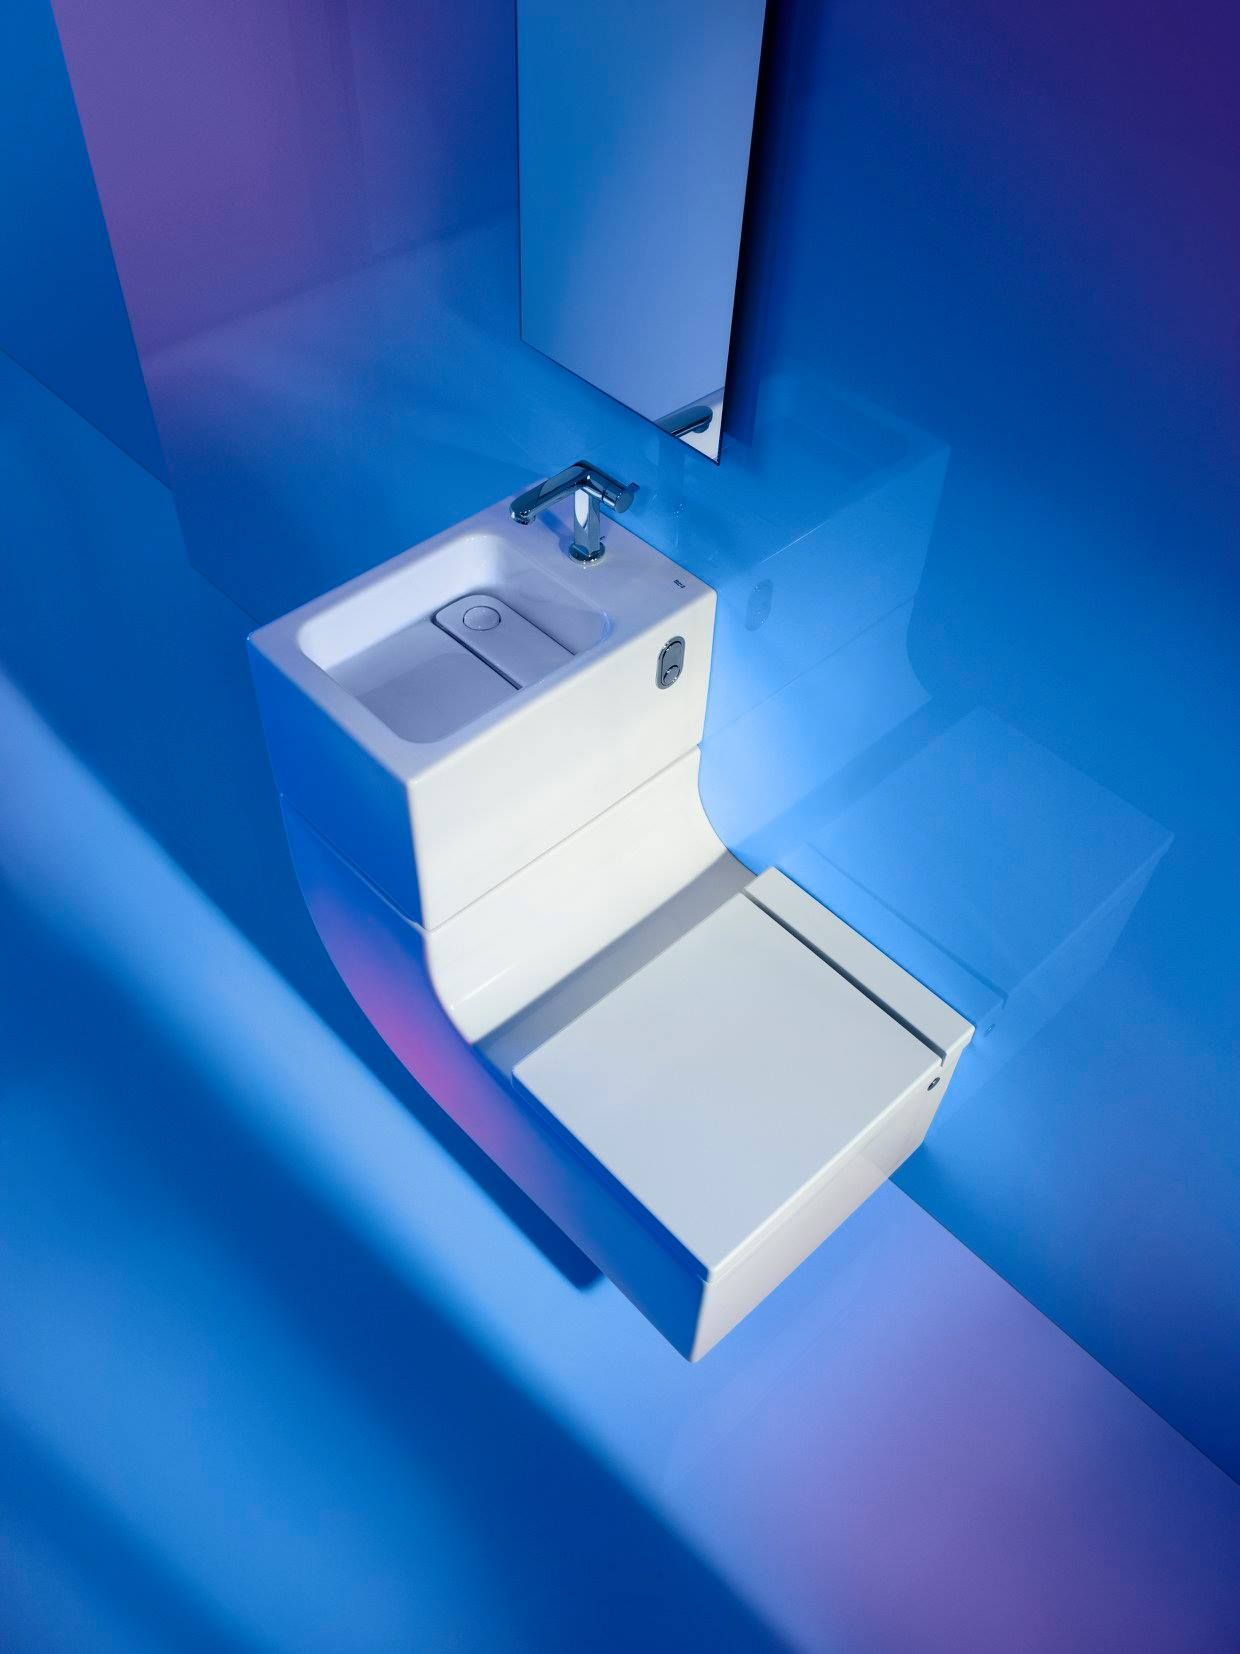 Cuvette Wc Suspendu Carre toiletteroca showroom david b paris toilette sanitaire